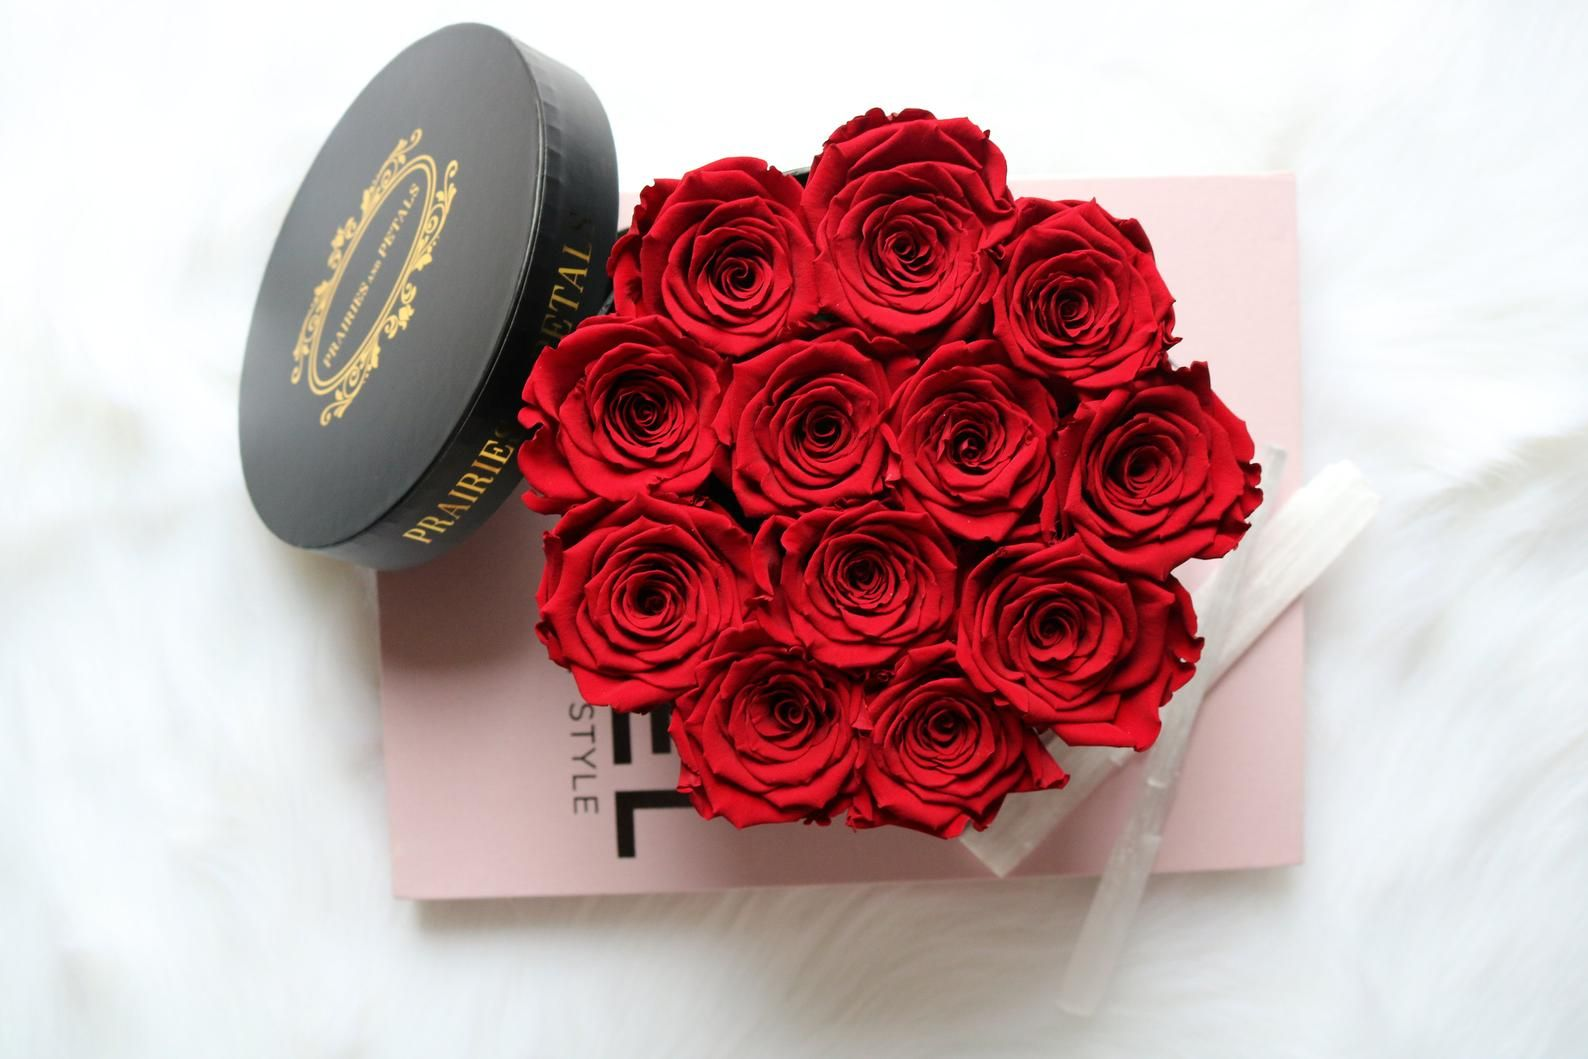 One Year Roses Gifts For Her Box Of Roses Mother S Day Forever Roses Everlasting Rose Flower Box Mirror Eternity Rose Rose Gift Gifts For Her Forever Rose